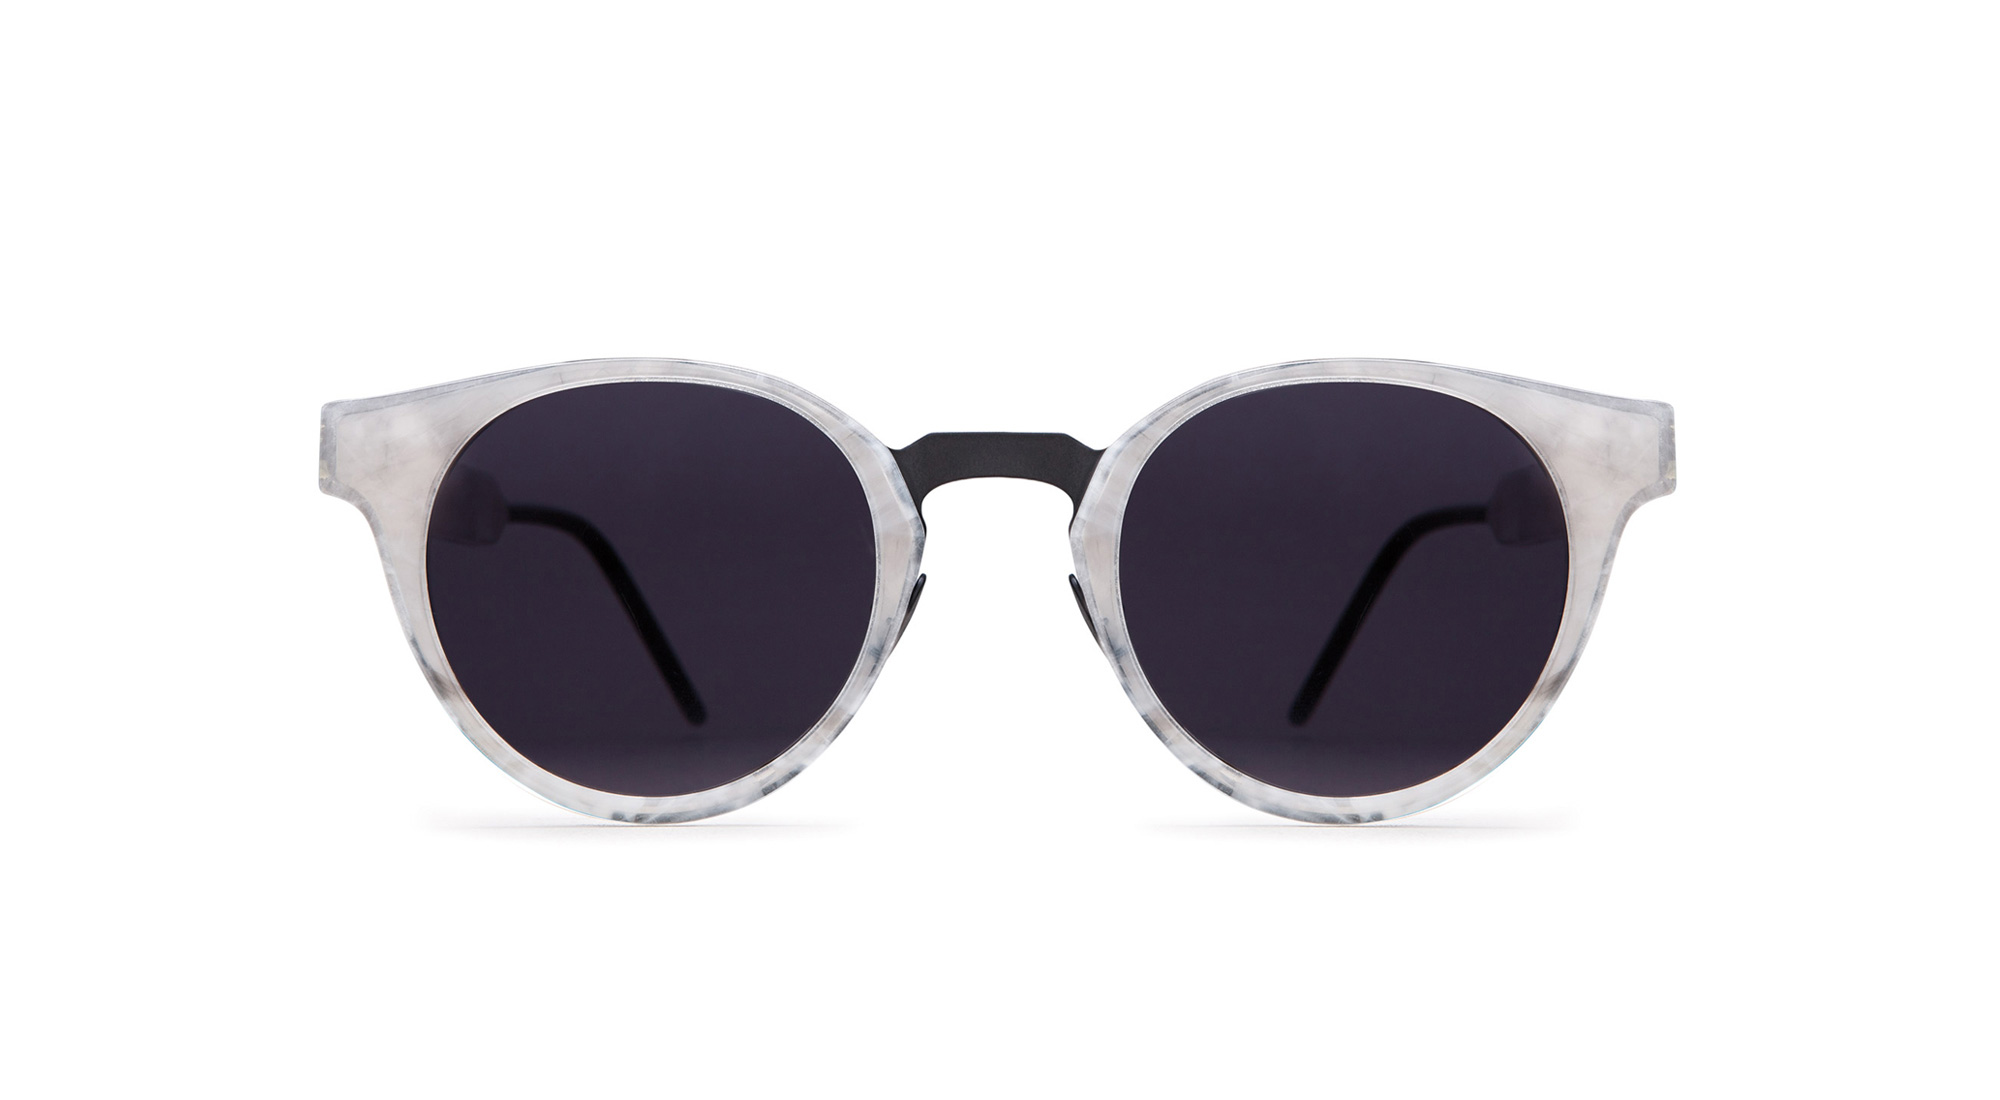 WILLIAMS_Eyewear_SOYA_WhiteMarble_FrontalView